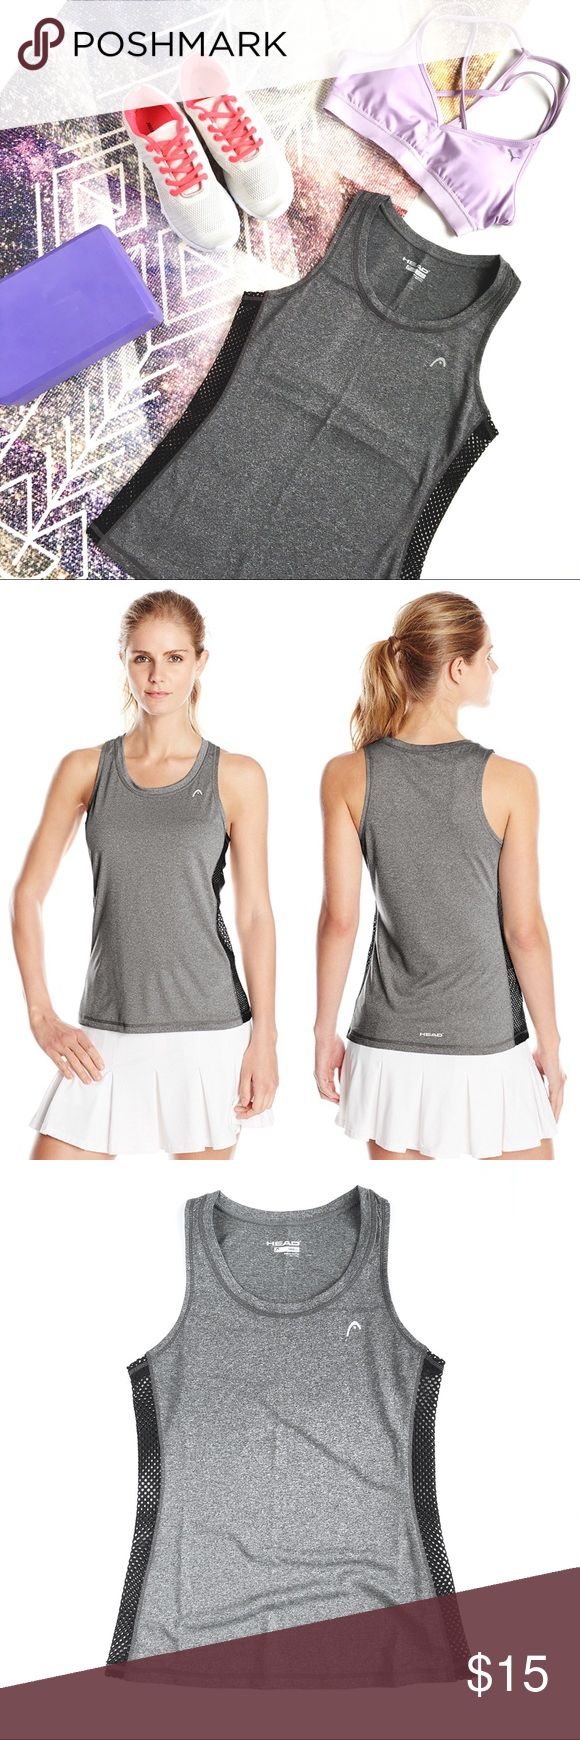 "HEAD Mesh Winged Active Tank in Charcoal Strike, S Basics don't have to be basic with this awesome athletic tank top from HEAD, featuring a heathered charcoal body with black meshed-out side panels for supreme breathability and air transfer. Scoop neck, sweat-wicking material. Size S, fits true to size, measures approx 15.5"" across chest, 24.5"" long. Brand new, never worn, NWOT. Please feel free to make an offer, bundle for greater discount, or ask any questions! :) HEAD Tops Tank Tops"